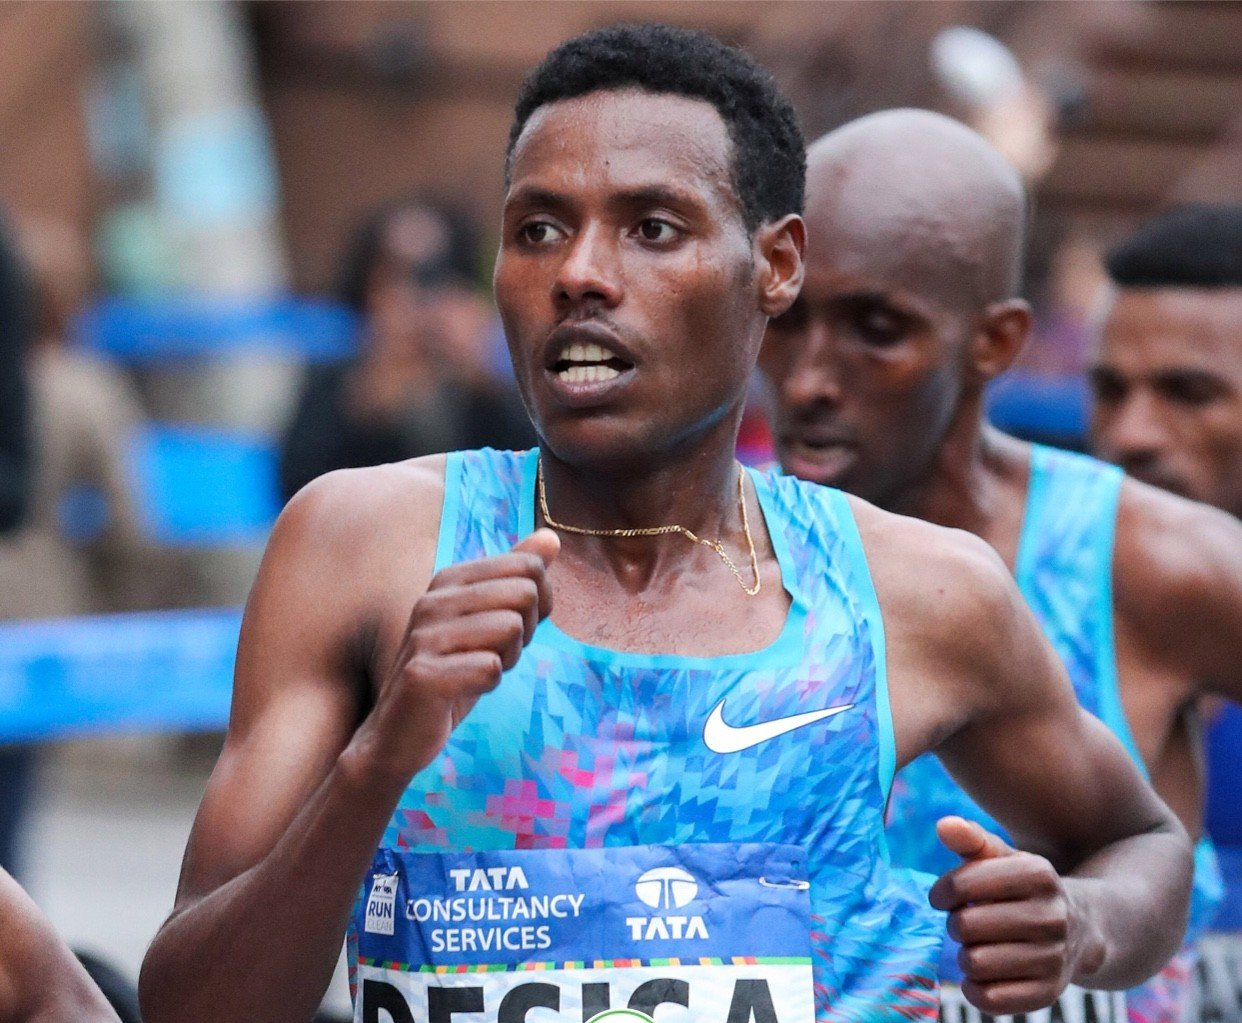 Two time Boston Marathon winner Lelisa Desisa out sprinted everyone to win the New York City Marathon in 2:05:59